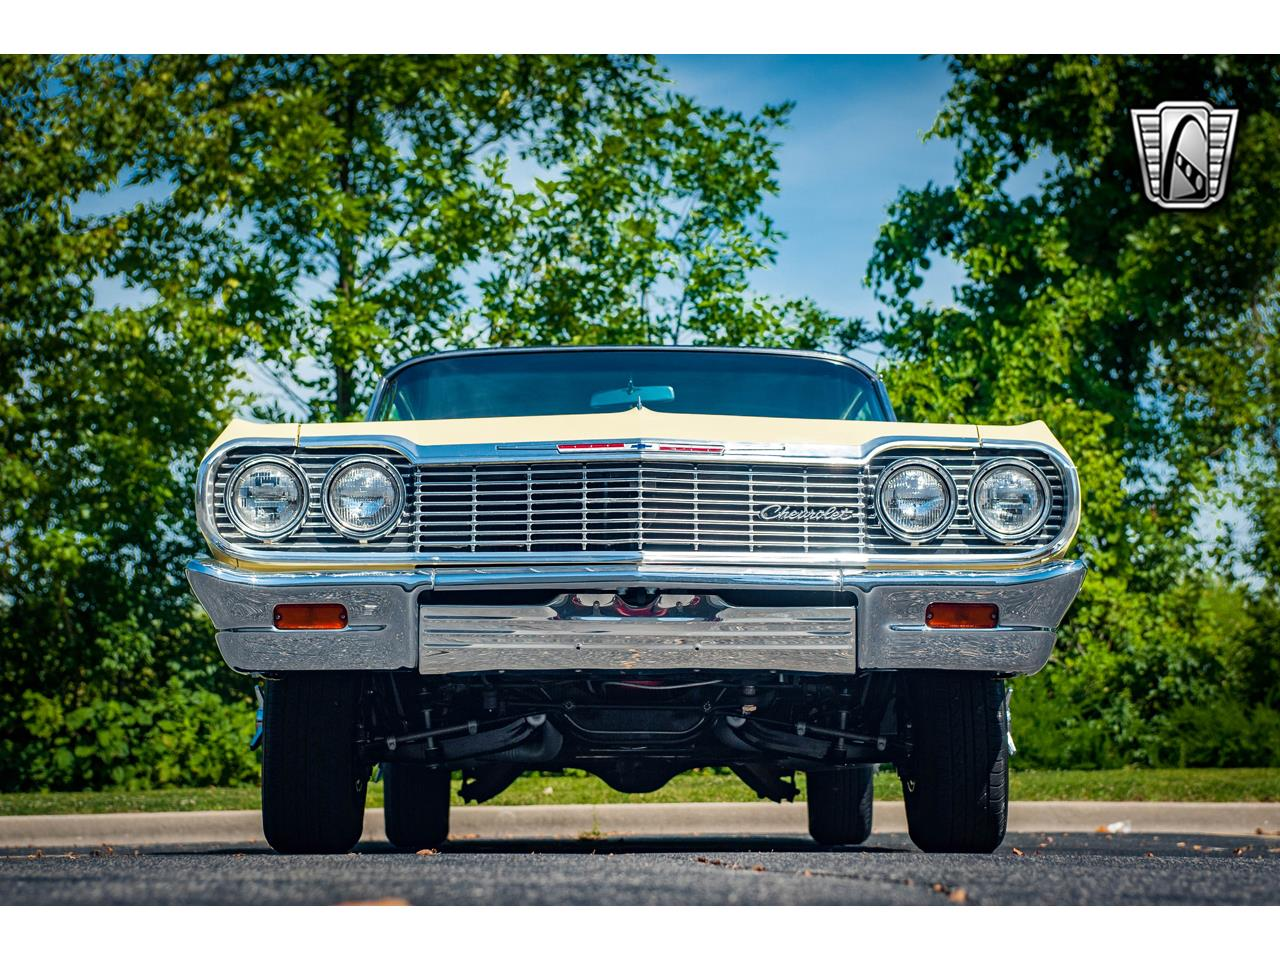 Large Picture of Classic '64 Chevrolet Impala located in Illinois Offered by Gateway Classic Cars - St. Louis - QRDR